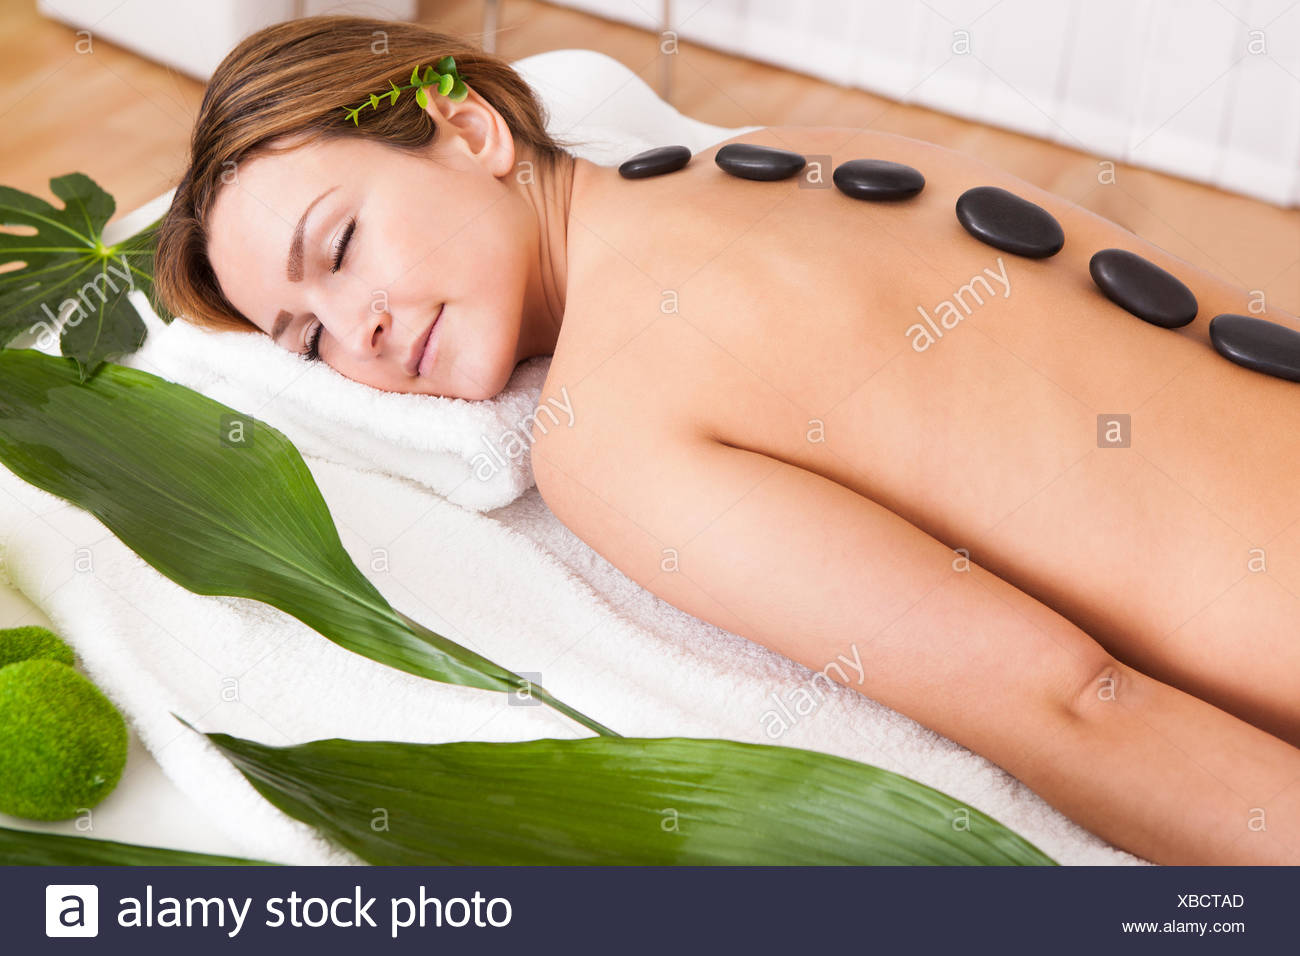 Portrait Of An Attractive Young Woman Lying In A Beauty Spa Stock Photo